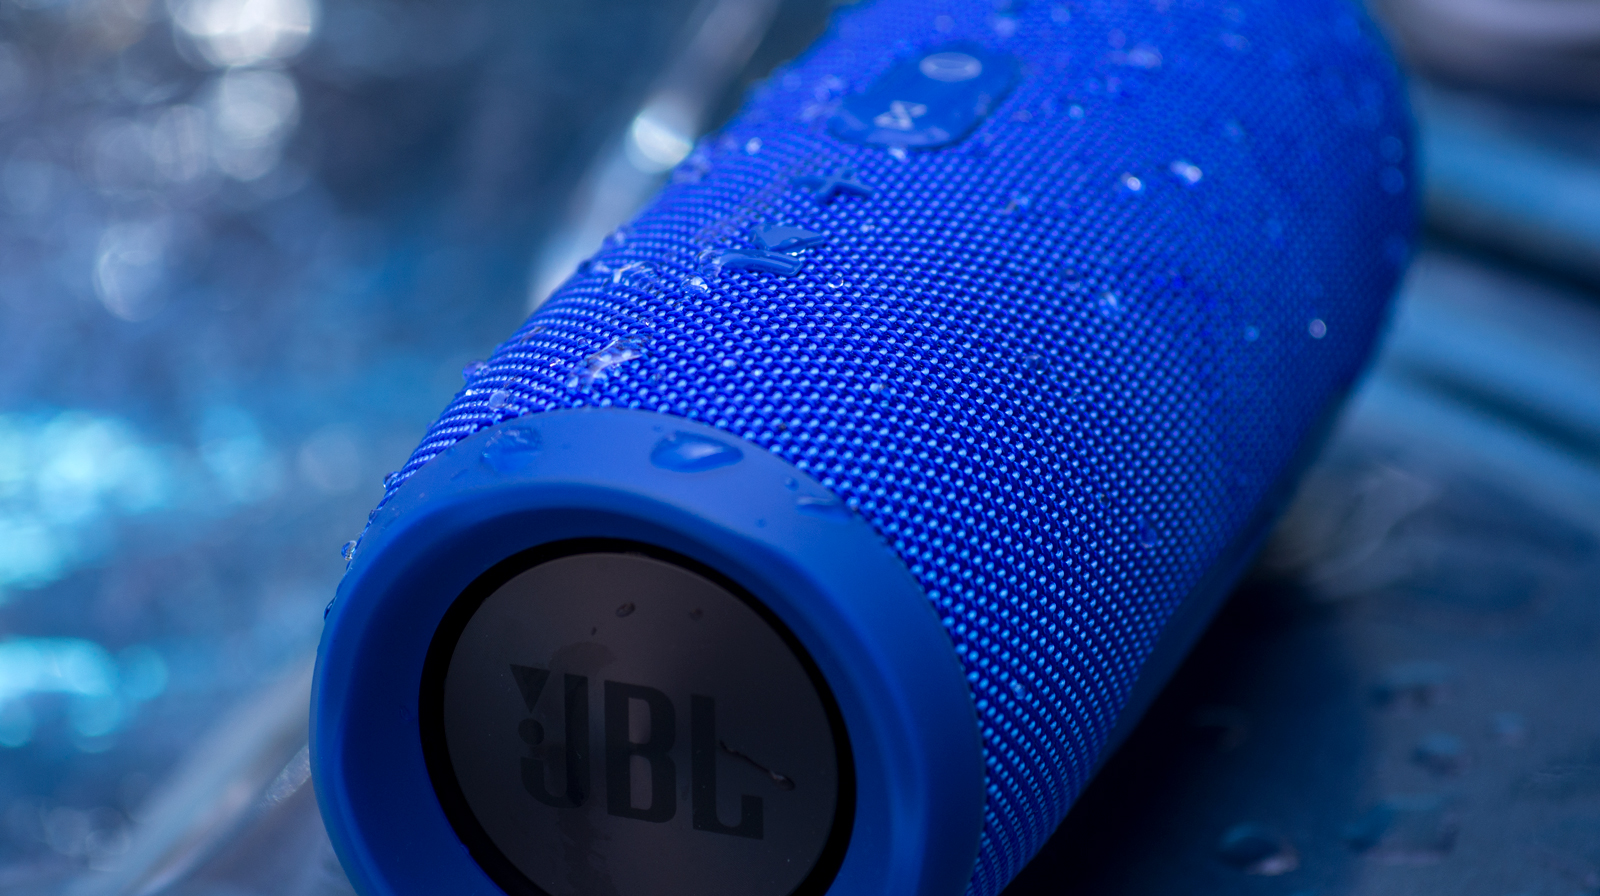 A photo of the JBL Charge 3 used in the hot tub, with water on